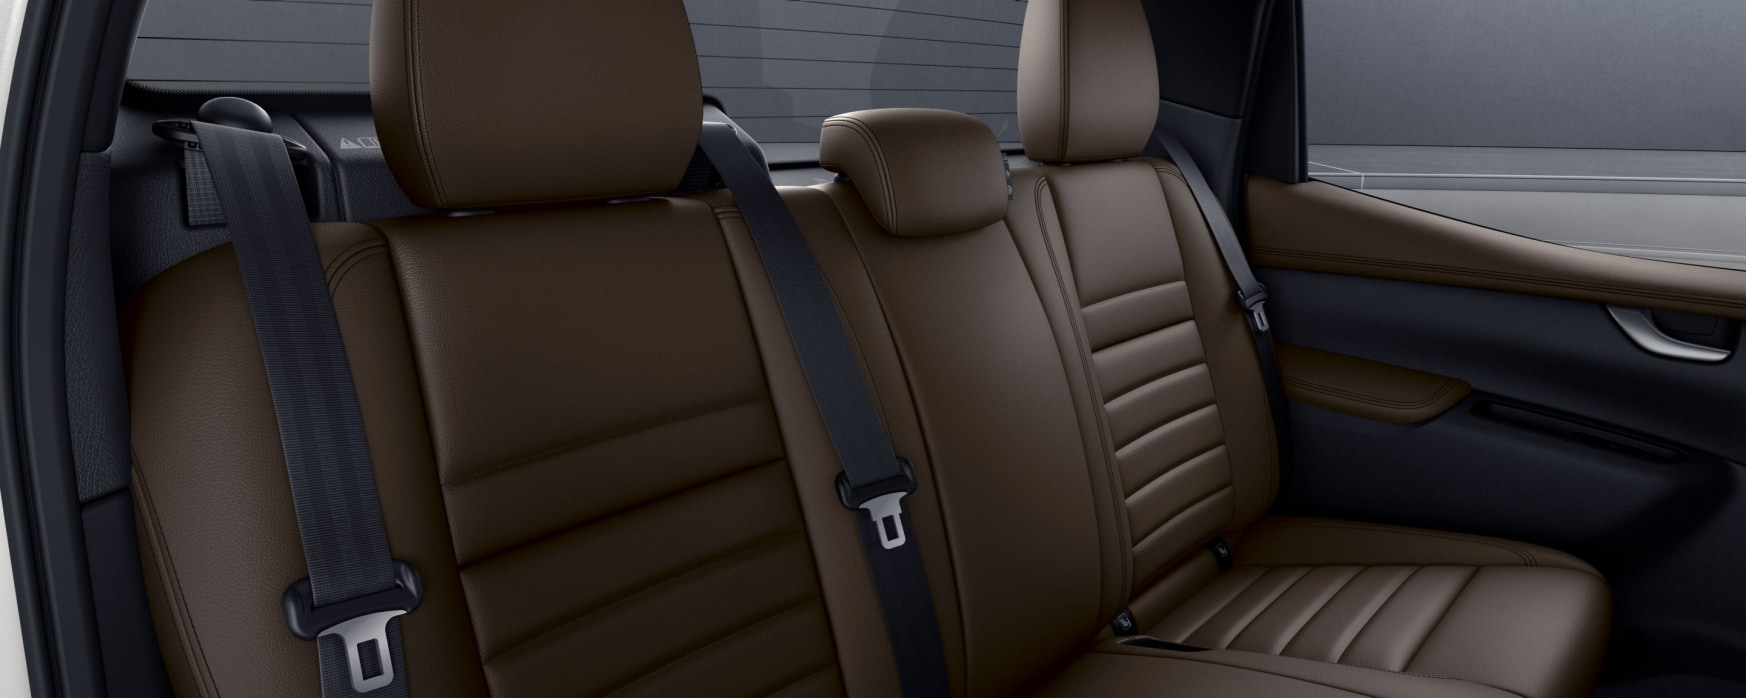 X-Class, POWER Grade, nut brown leather